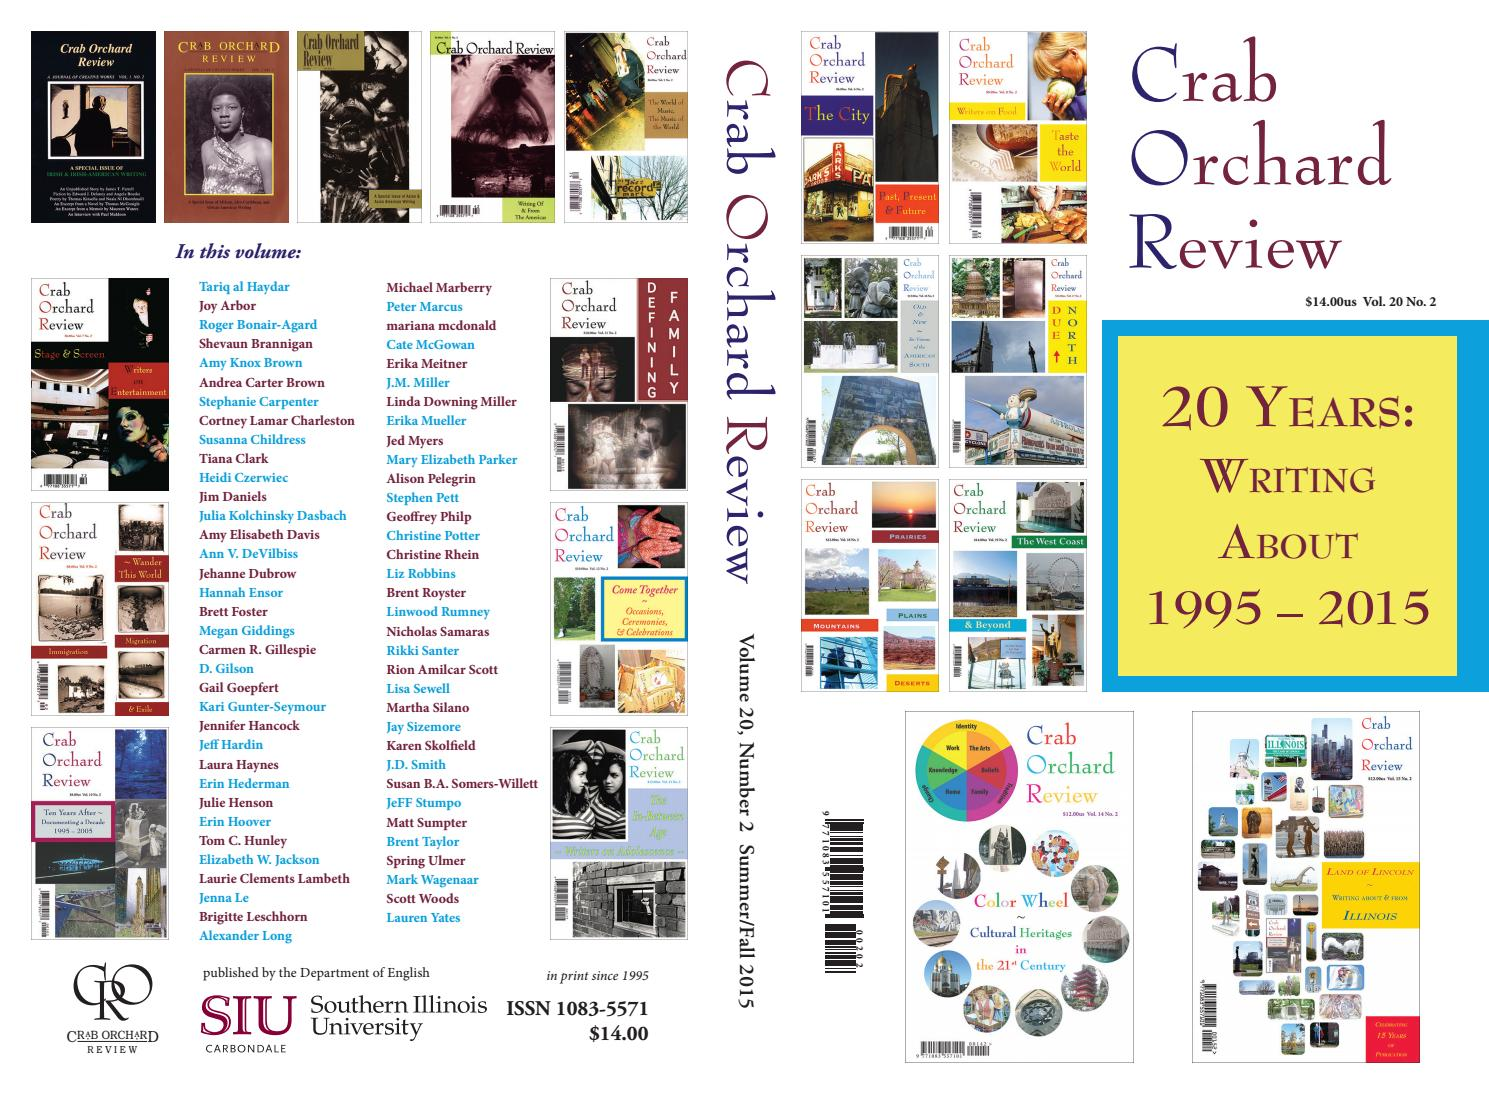 1b3f3417 Crab Orchard Review Vol 20 No 2 S/F 2015 by Crab Orchard Review - issuu